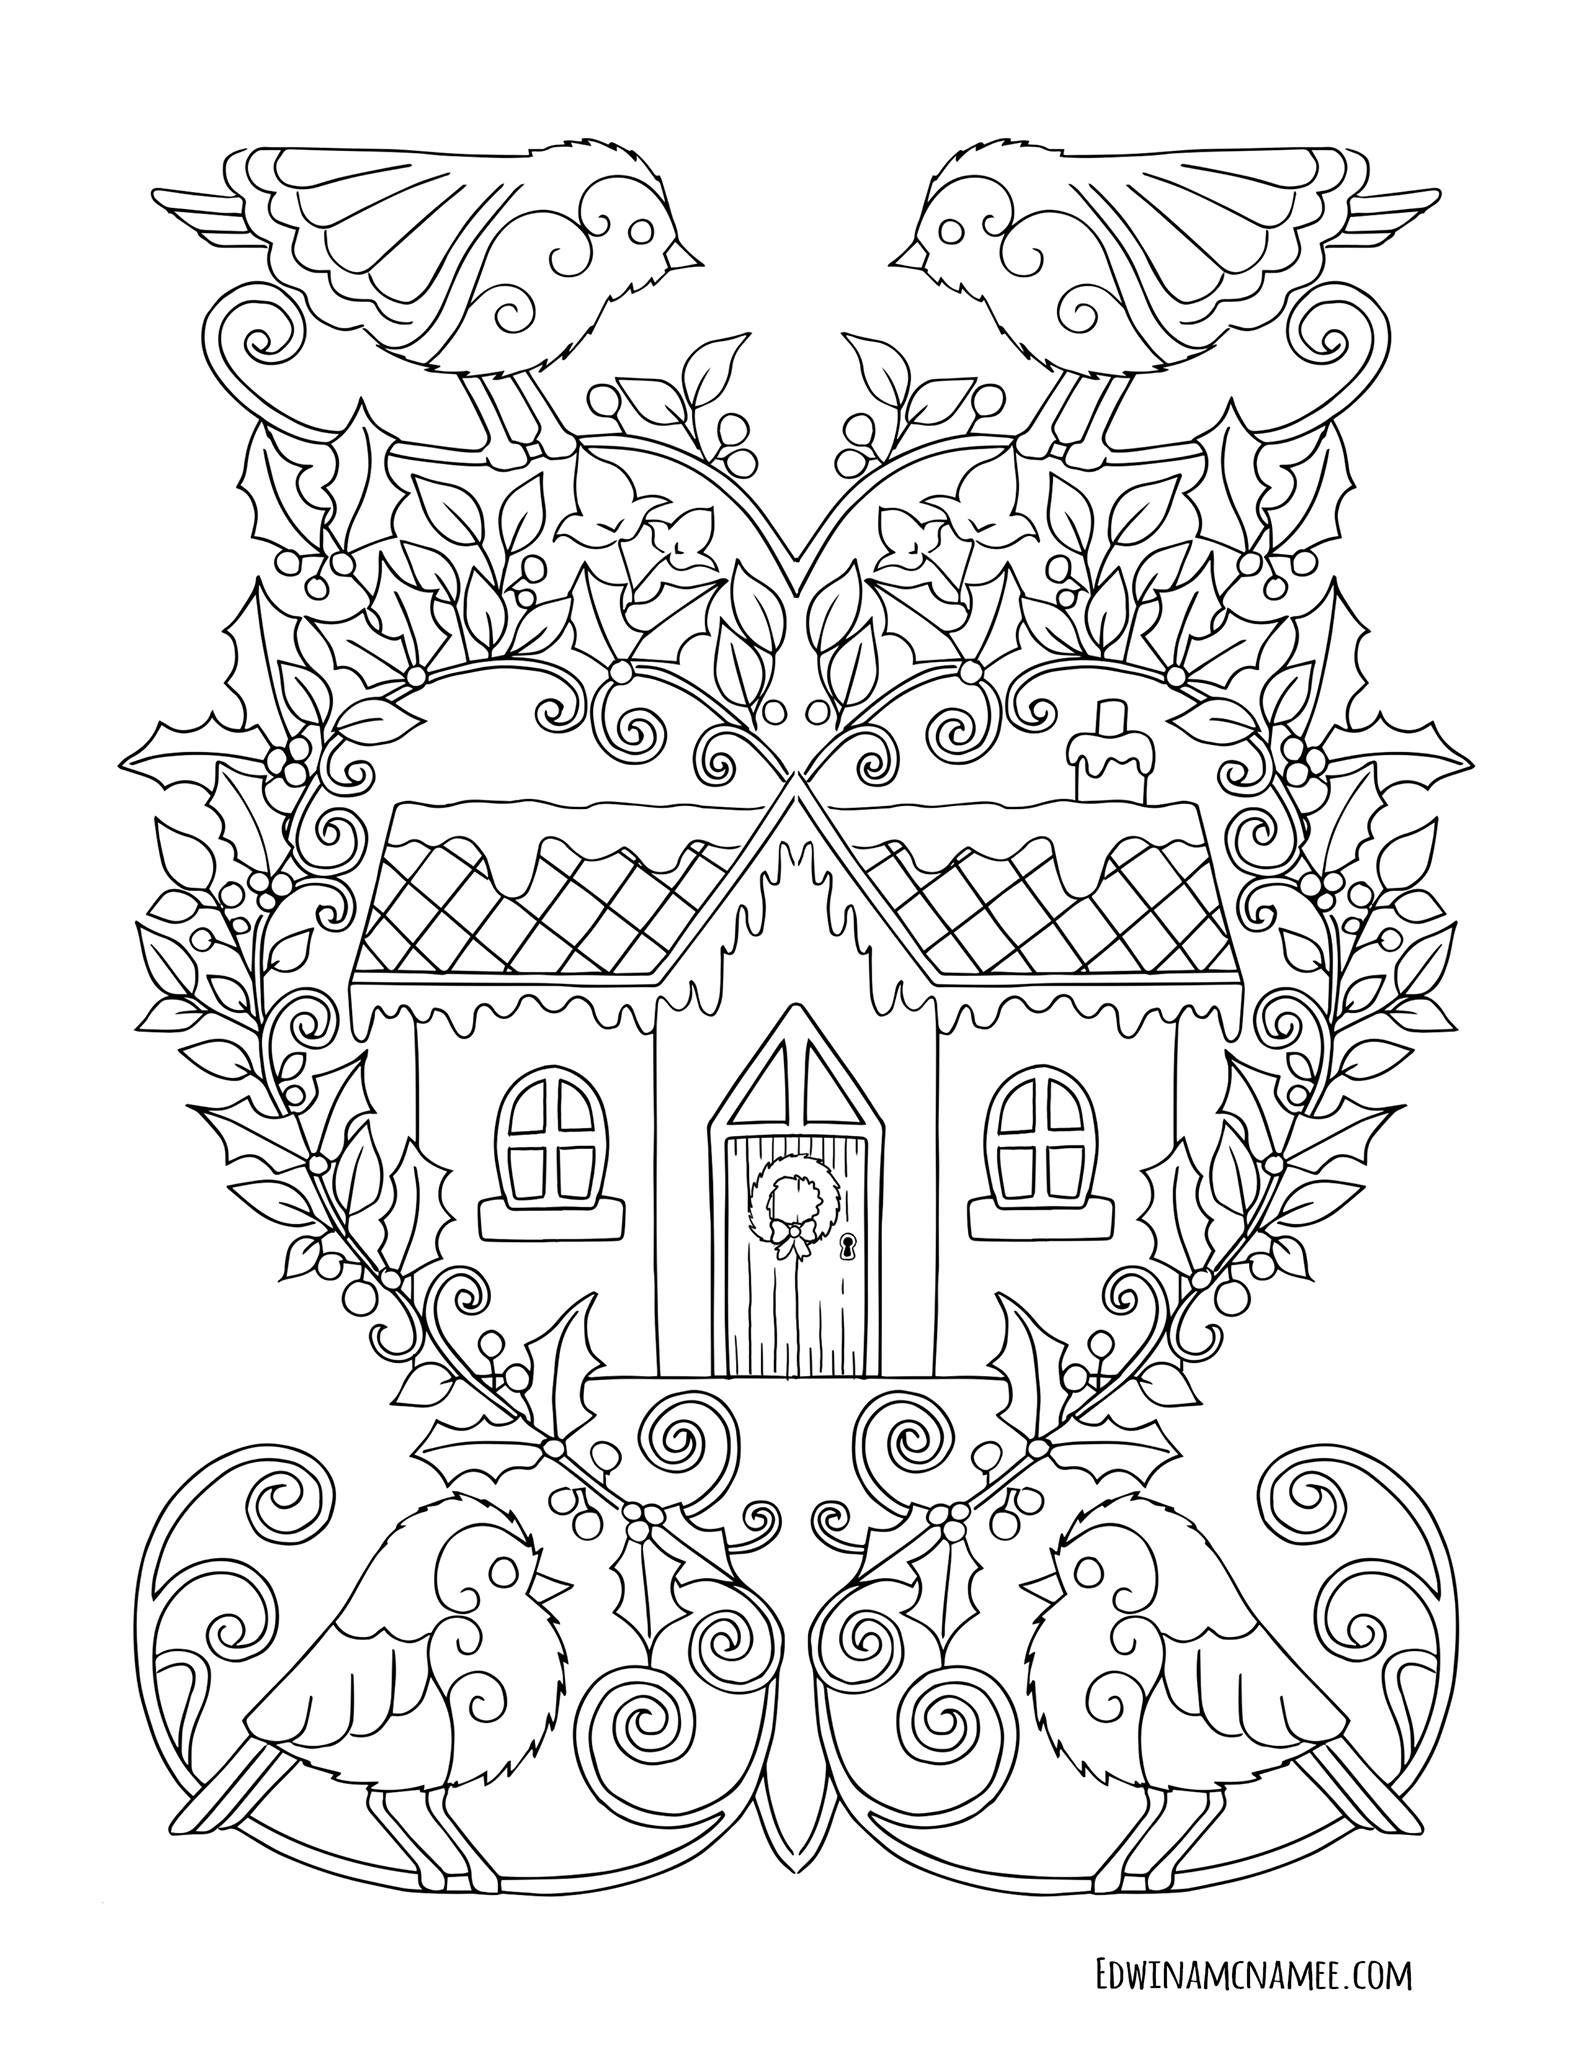 Winter windlings coloring book | Kleuren voor volwassen | Pinterest ...